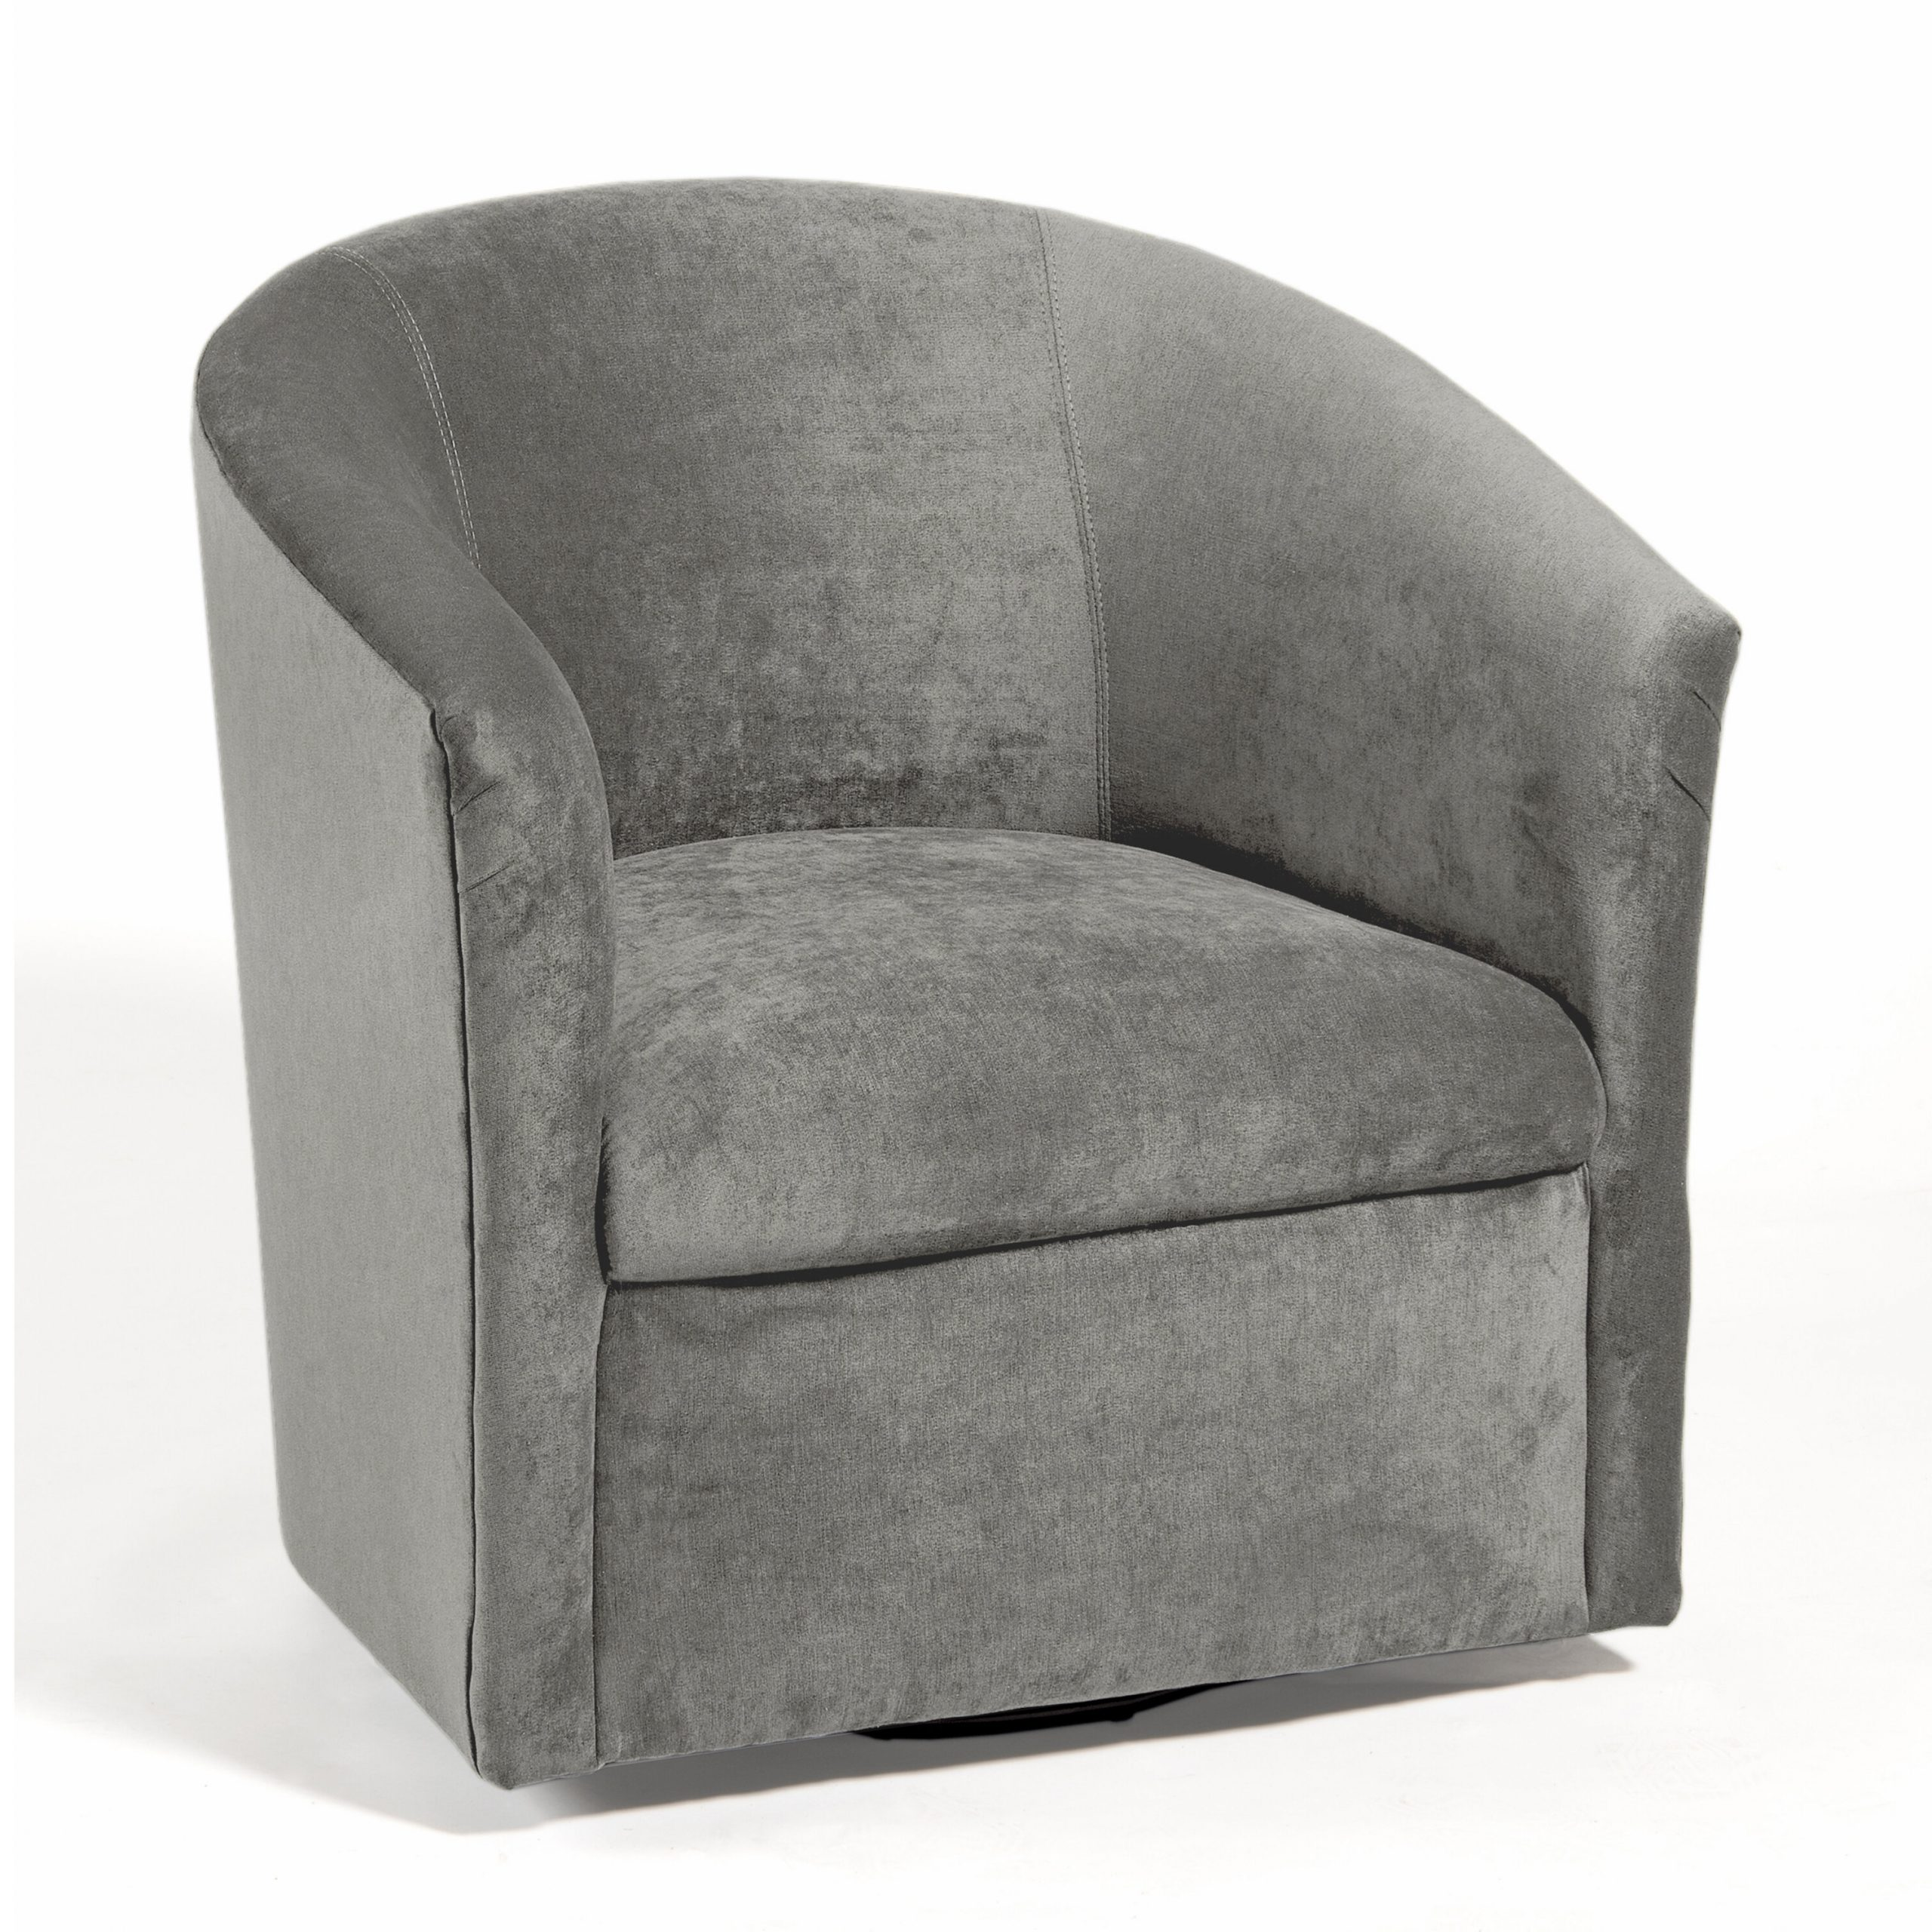 Loftus Swivel Armchairs With Regard To Most Recent Swivel Chairs (View 13 of 20)